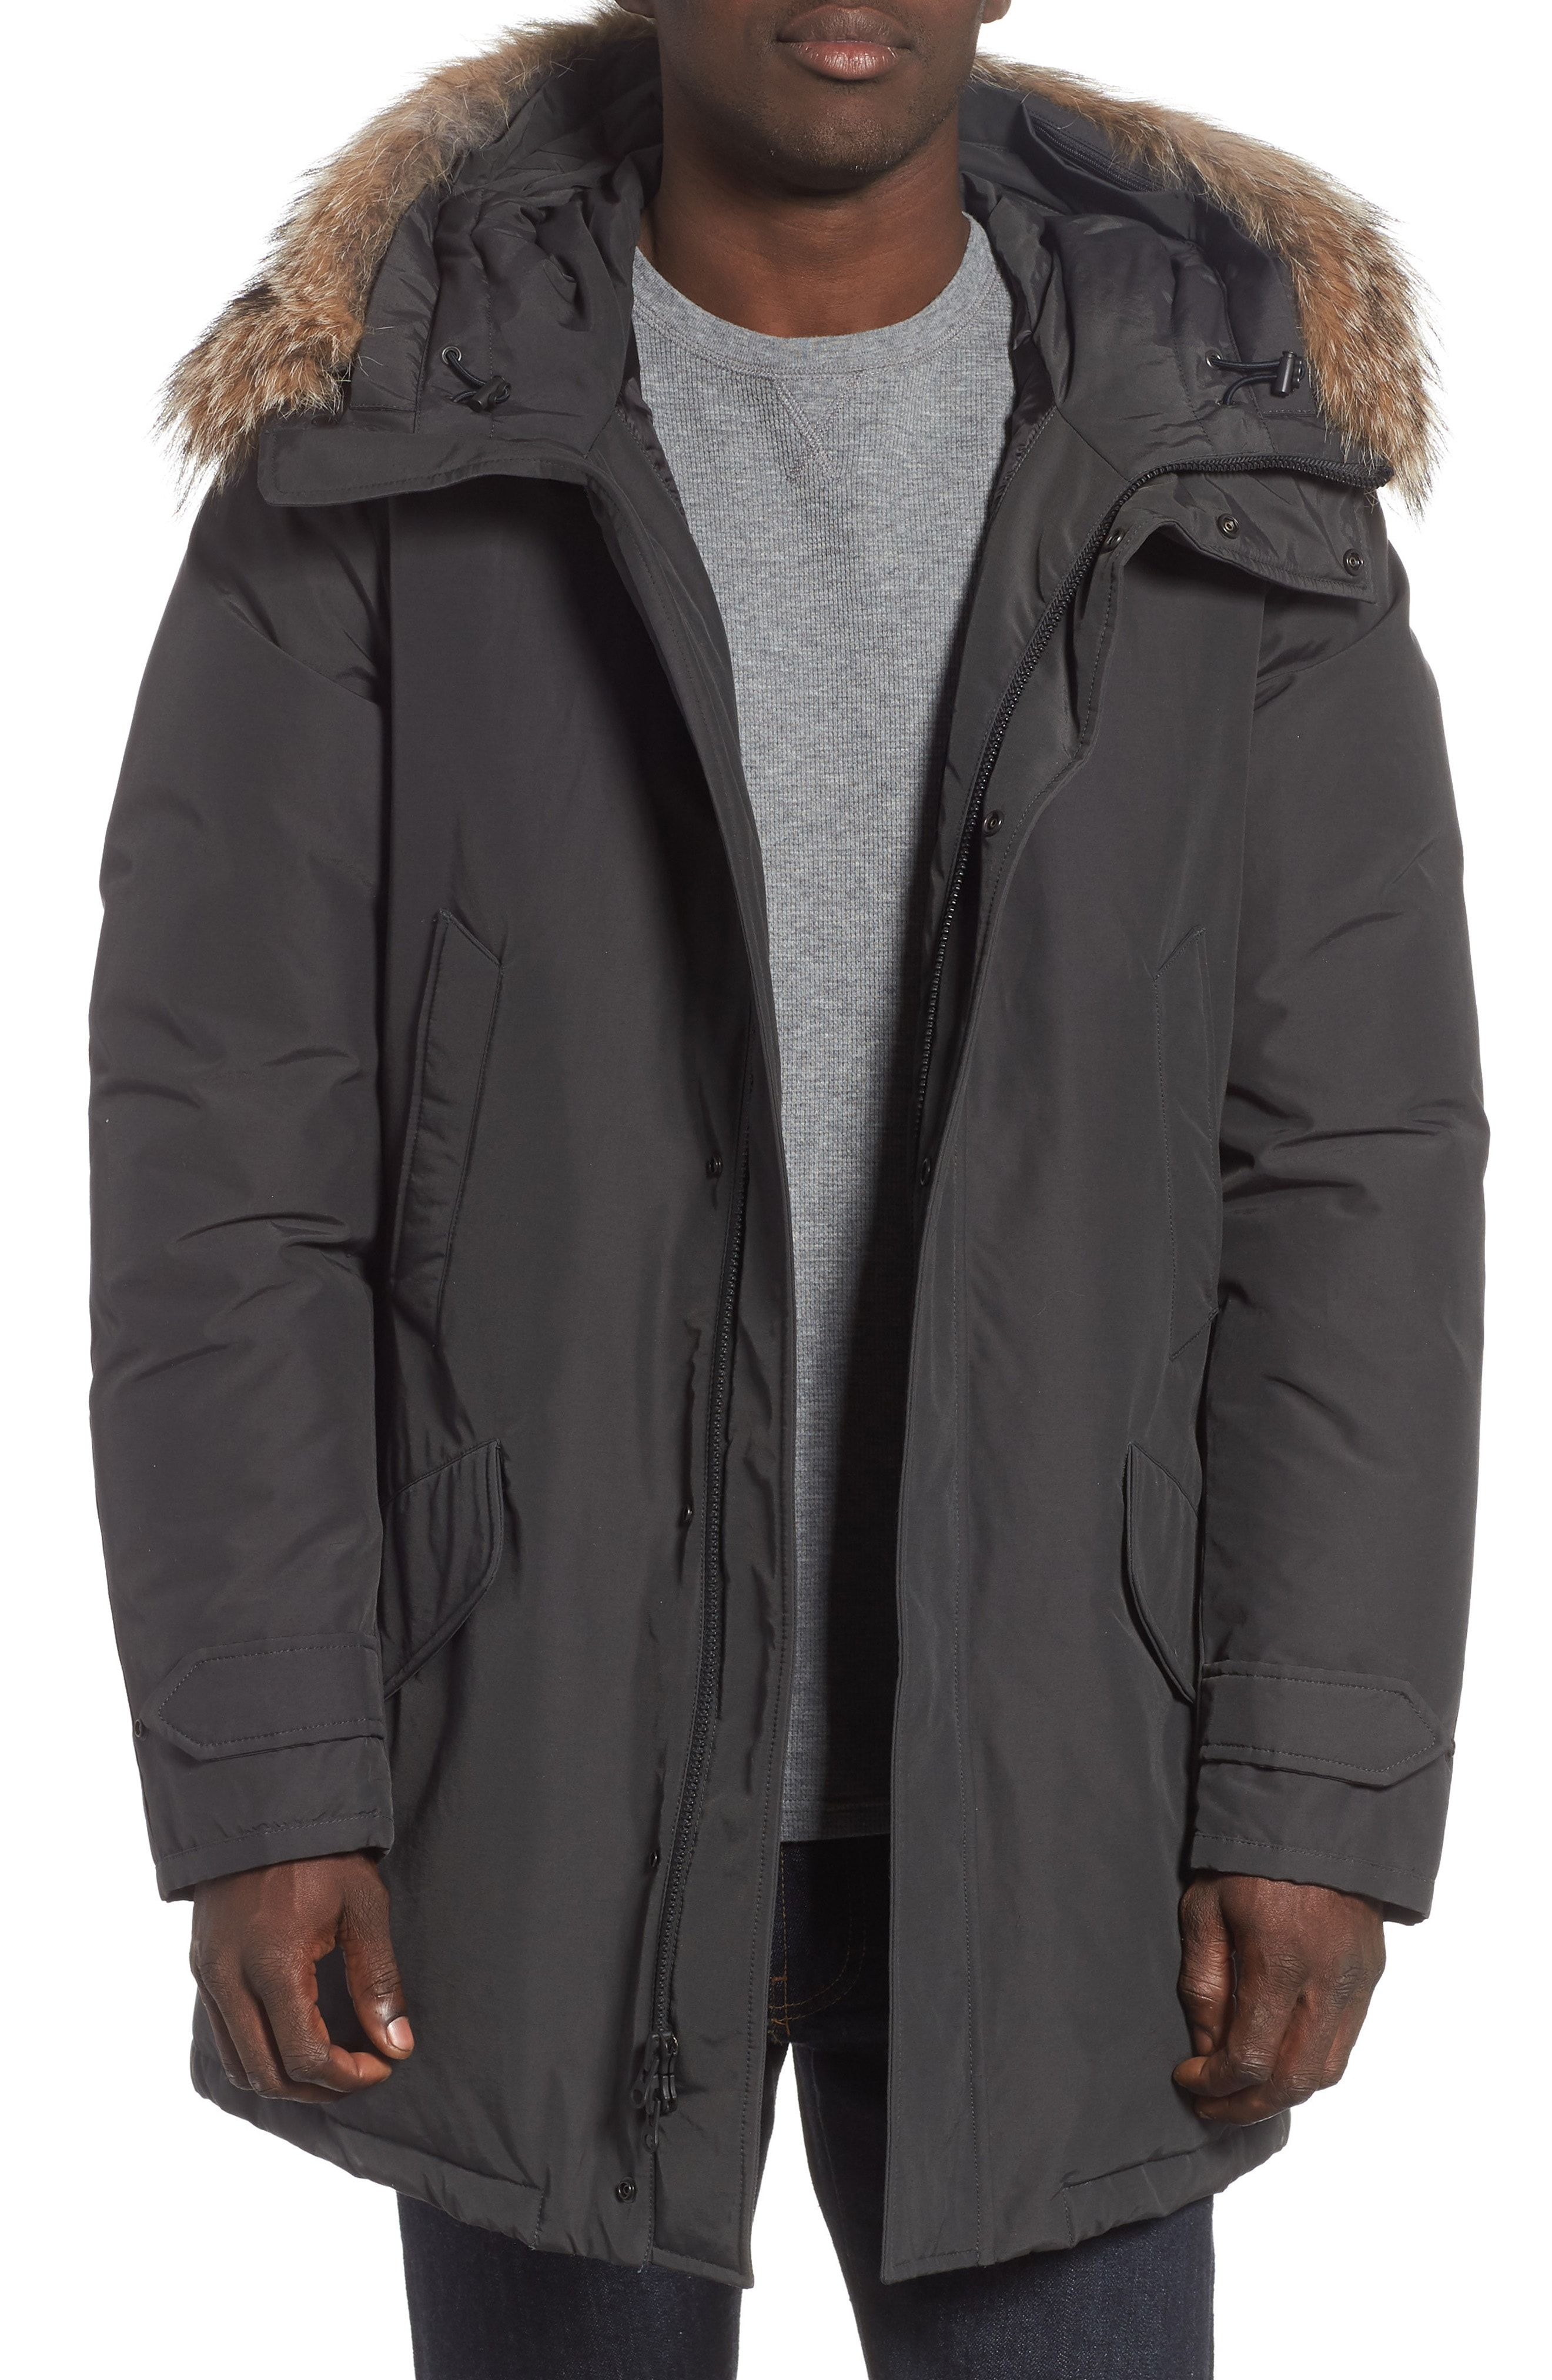 bda73b32 20 Best Men's Winter Coats and Jackets 2018 - Cold Weather Outerwear